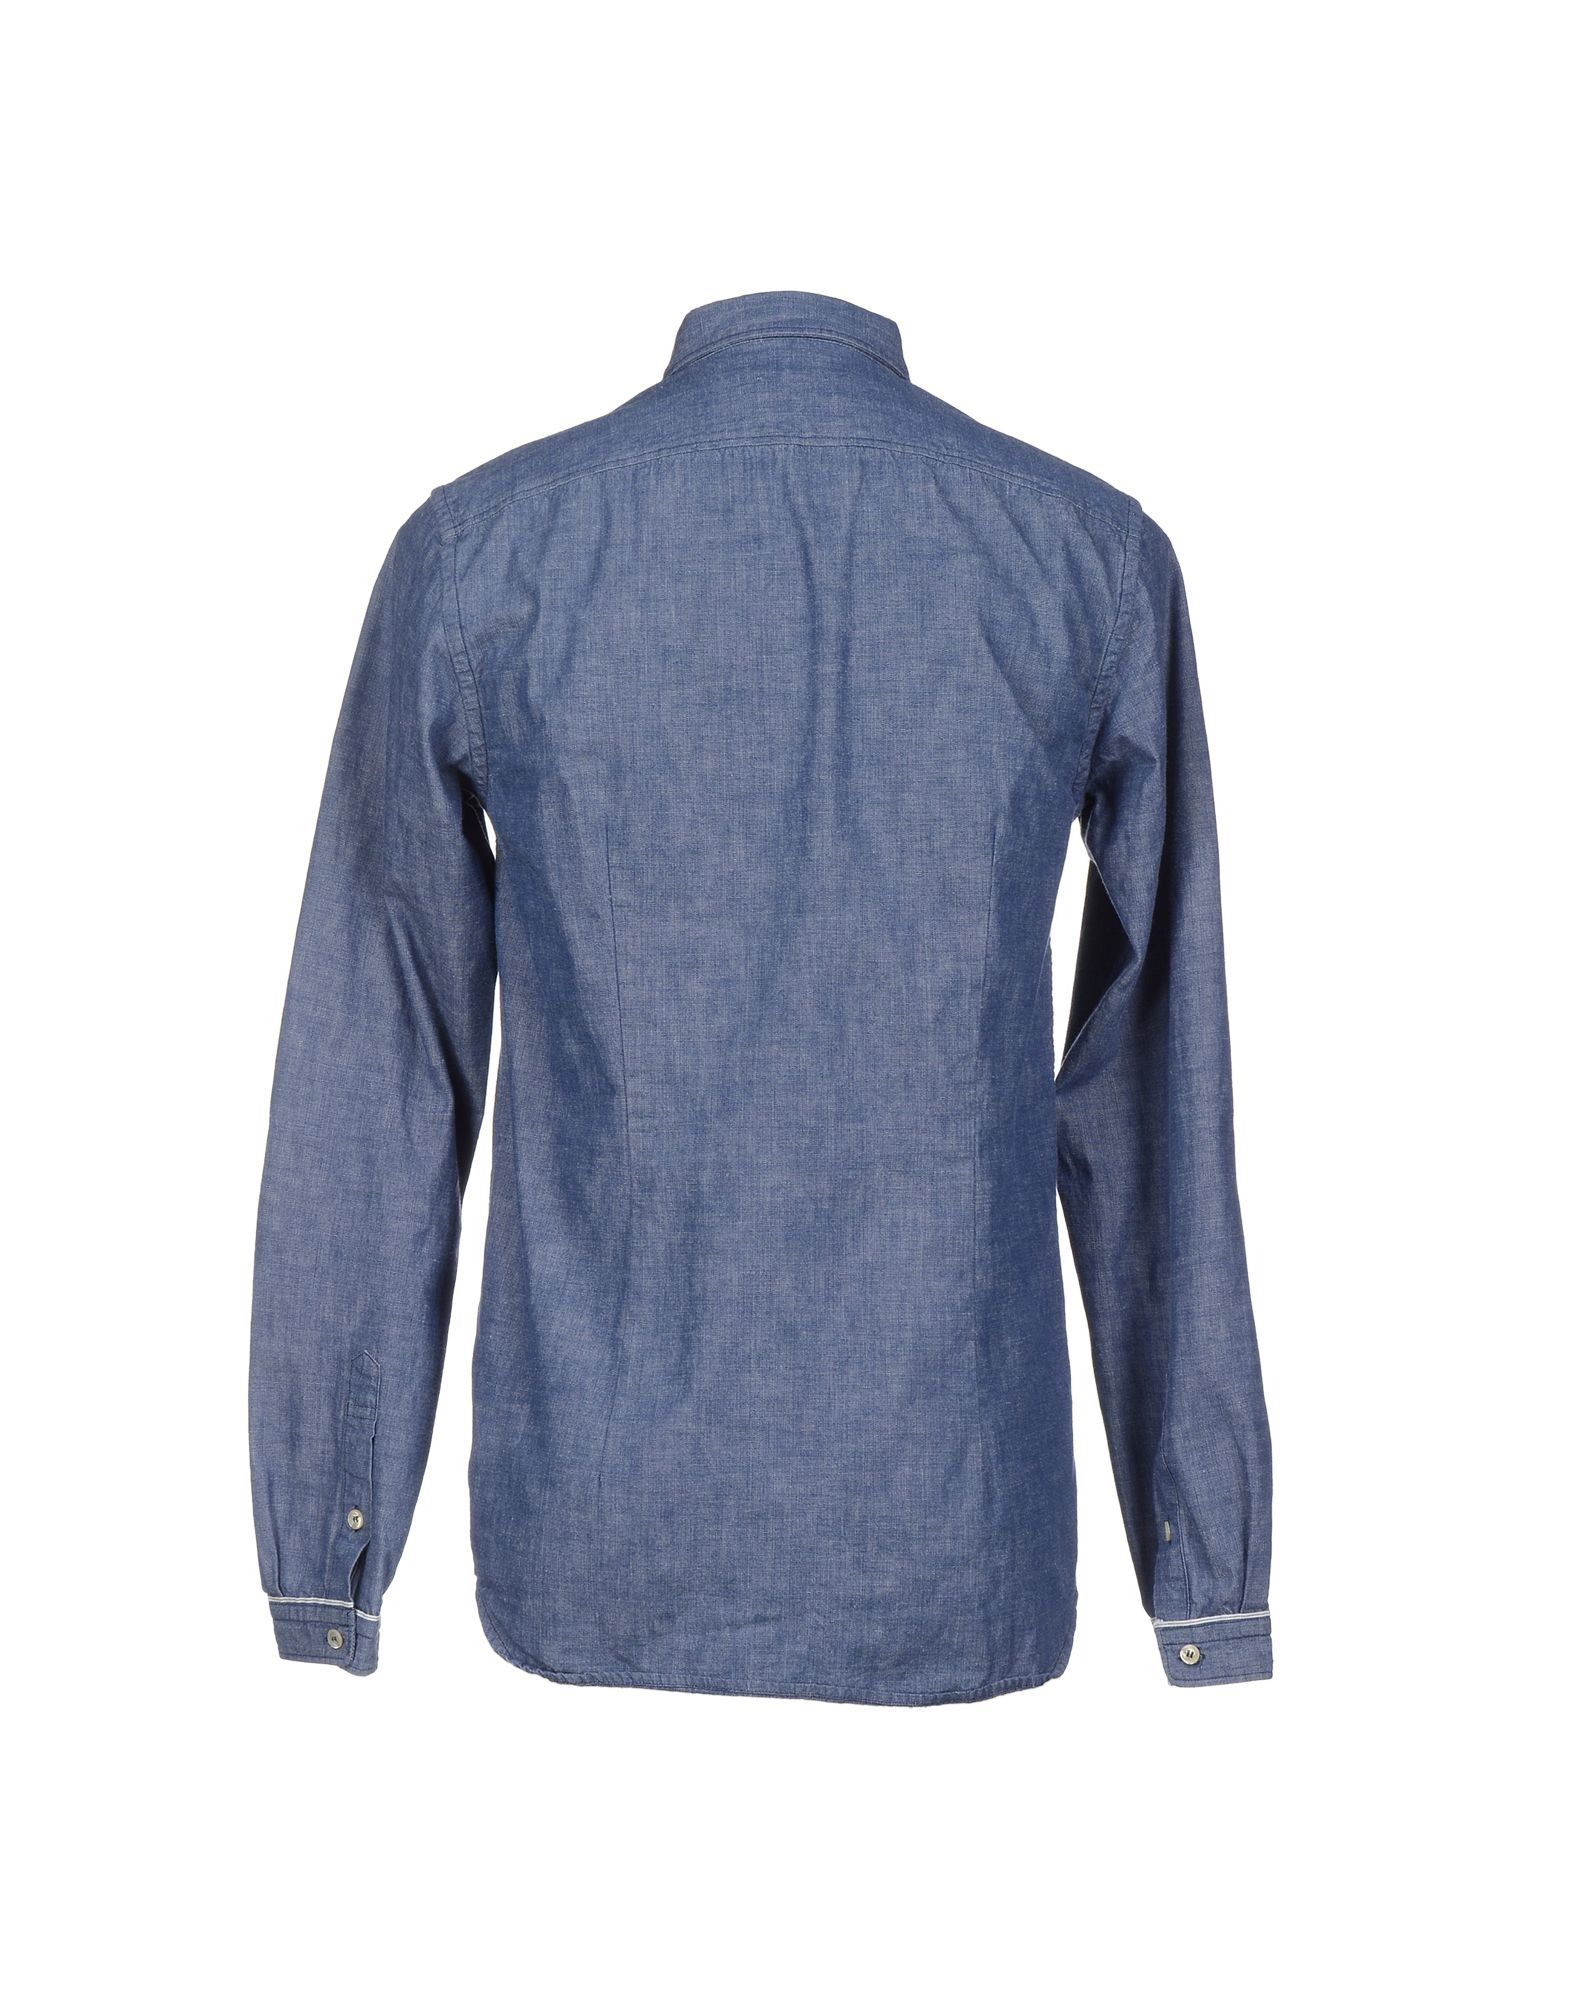 Lyst diesel black gold denim shirt in blue for men Black shirt blue jeans